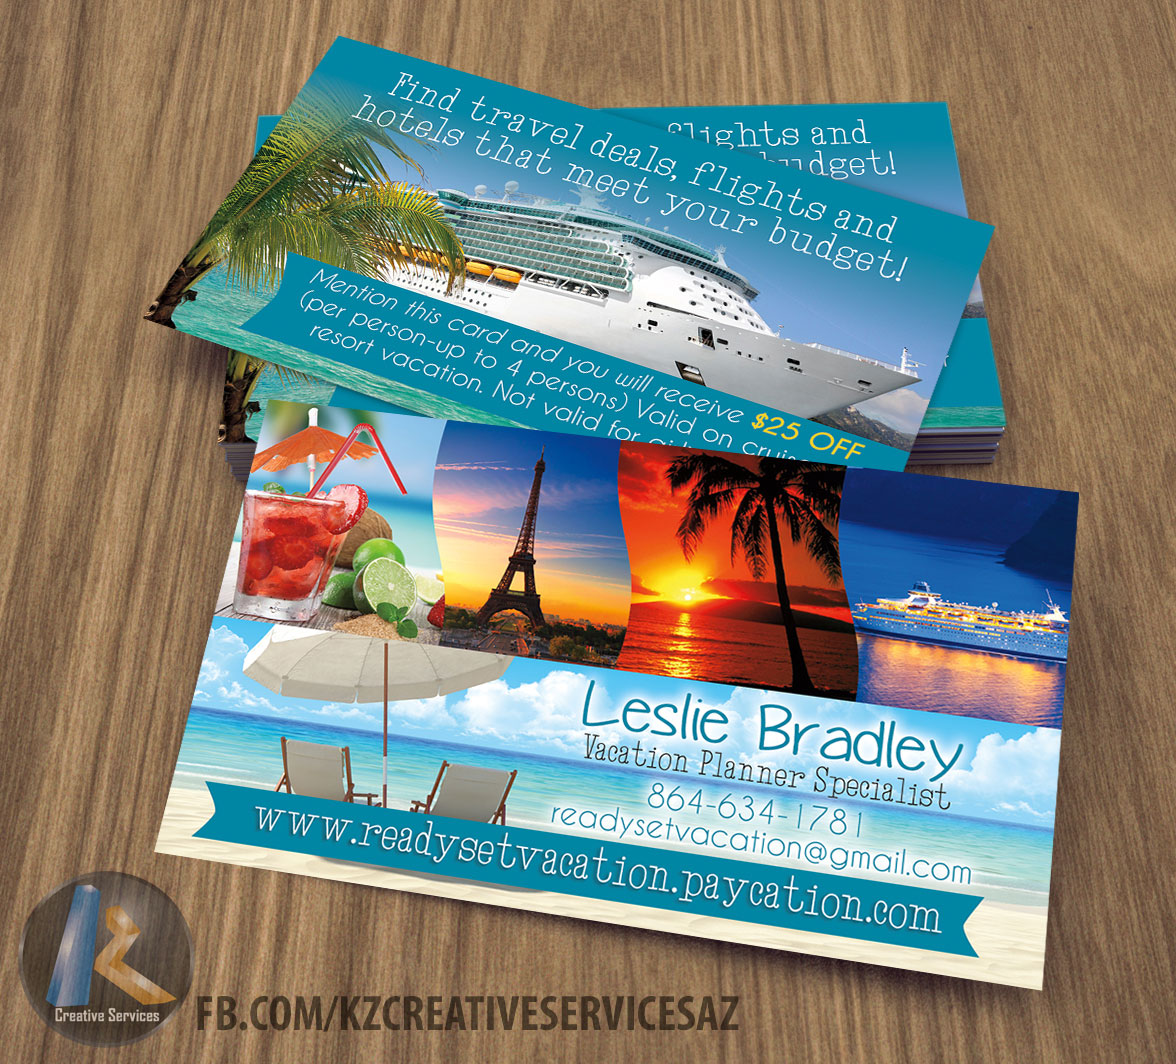 Paycation Business Cards style 1 · KZ Creative Services · Online ...